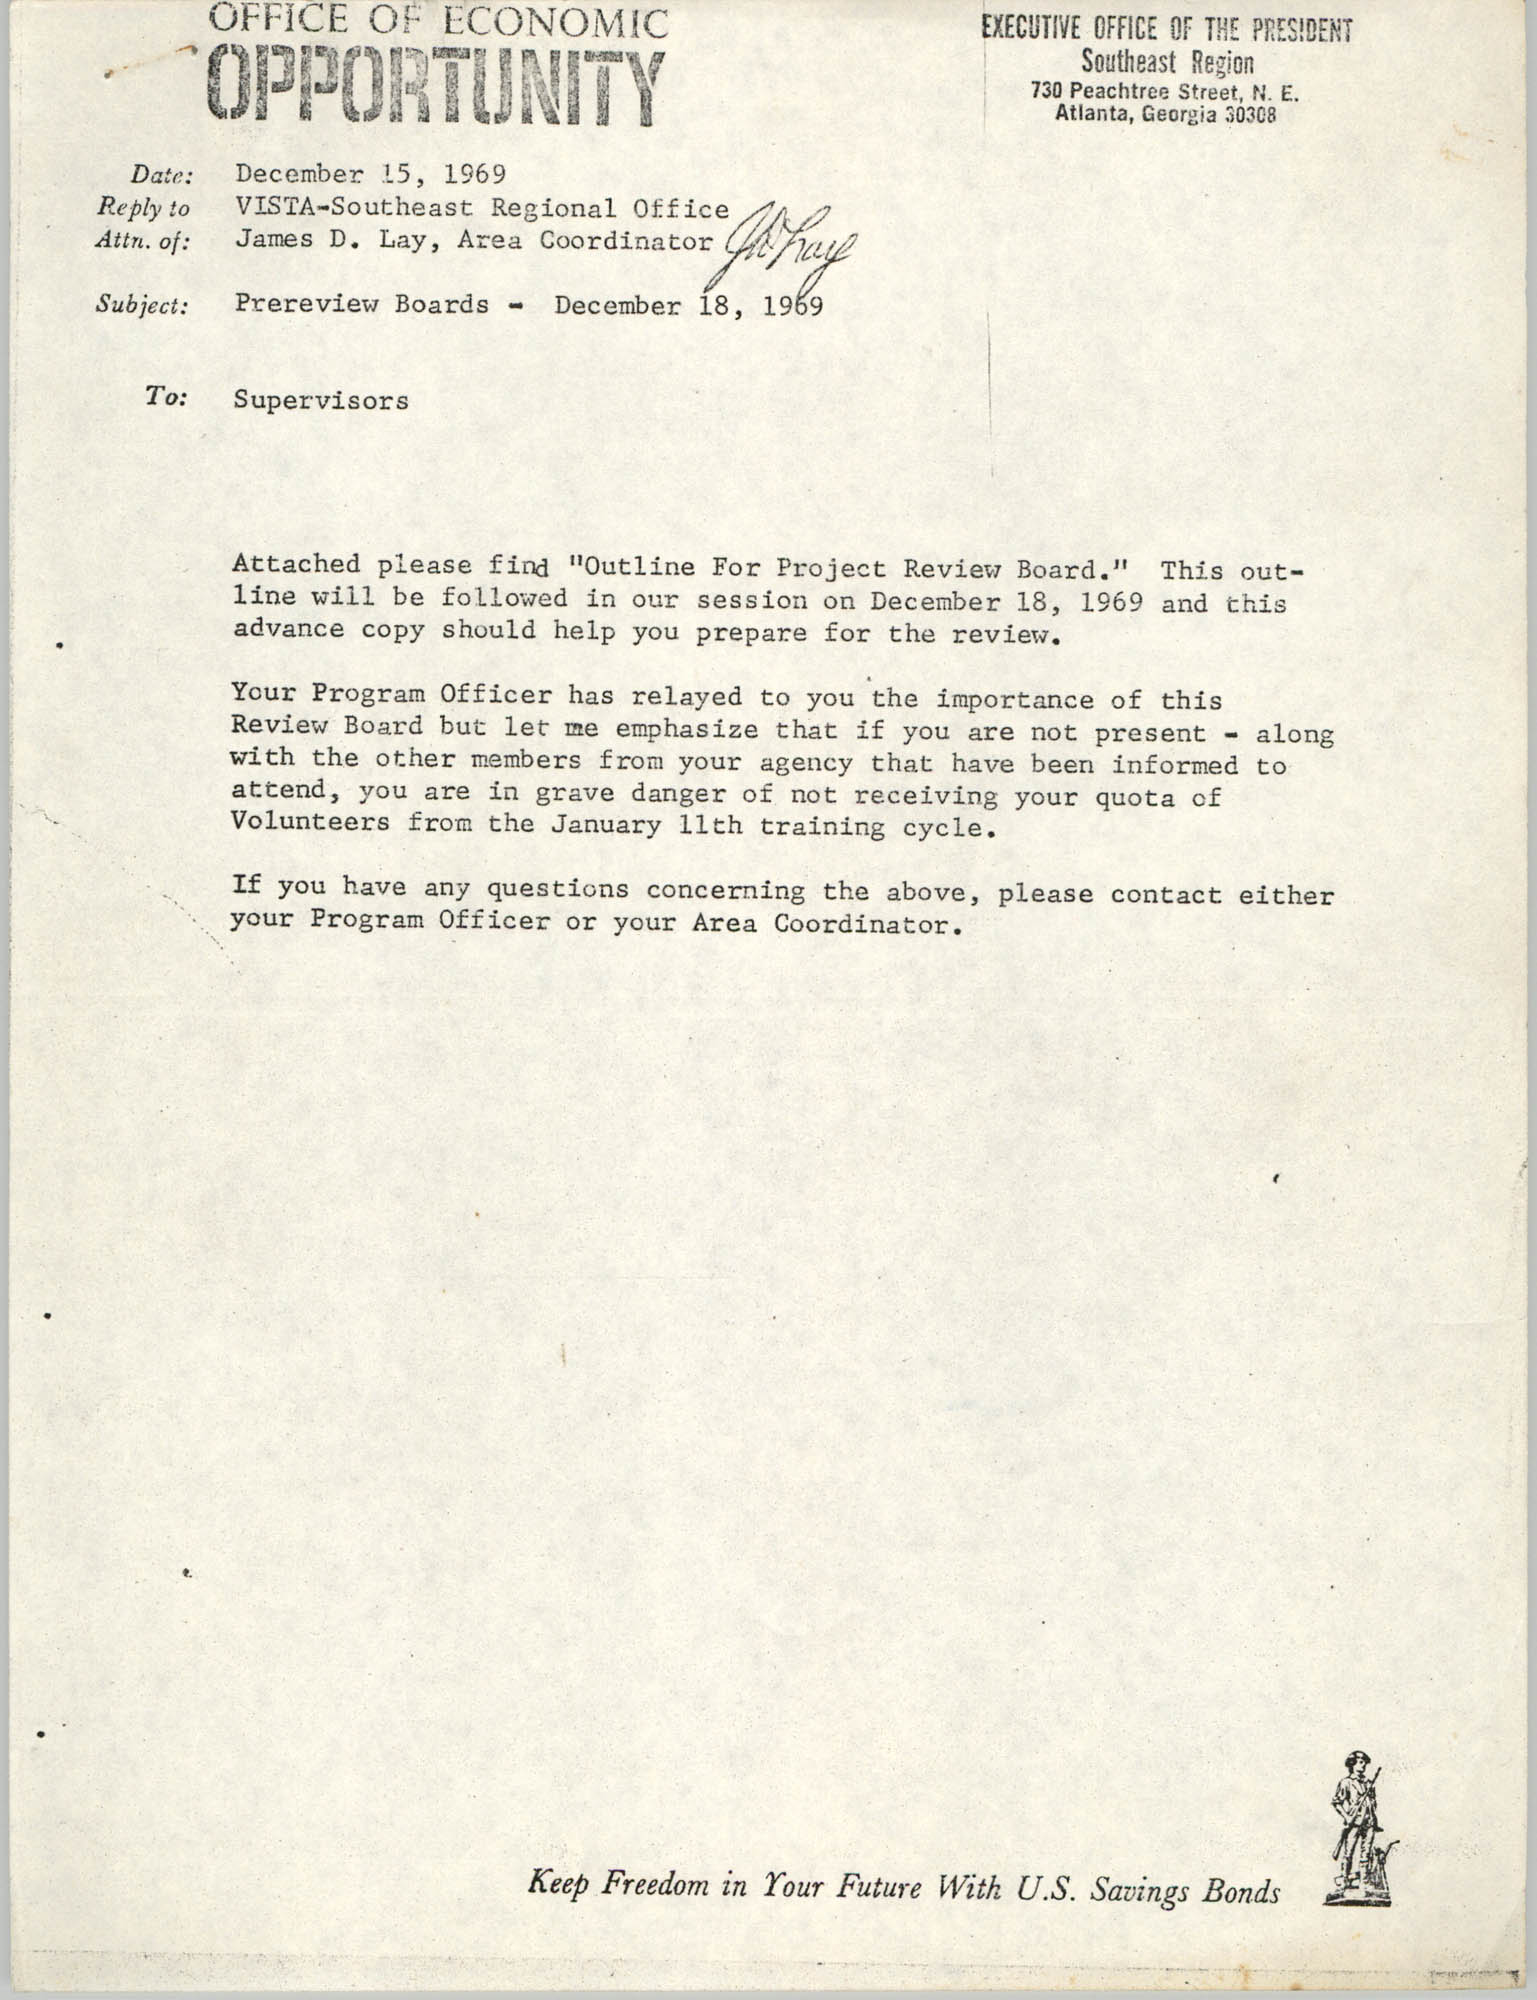 Office of Economic Opportunity Memorandum, December 15, 1969